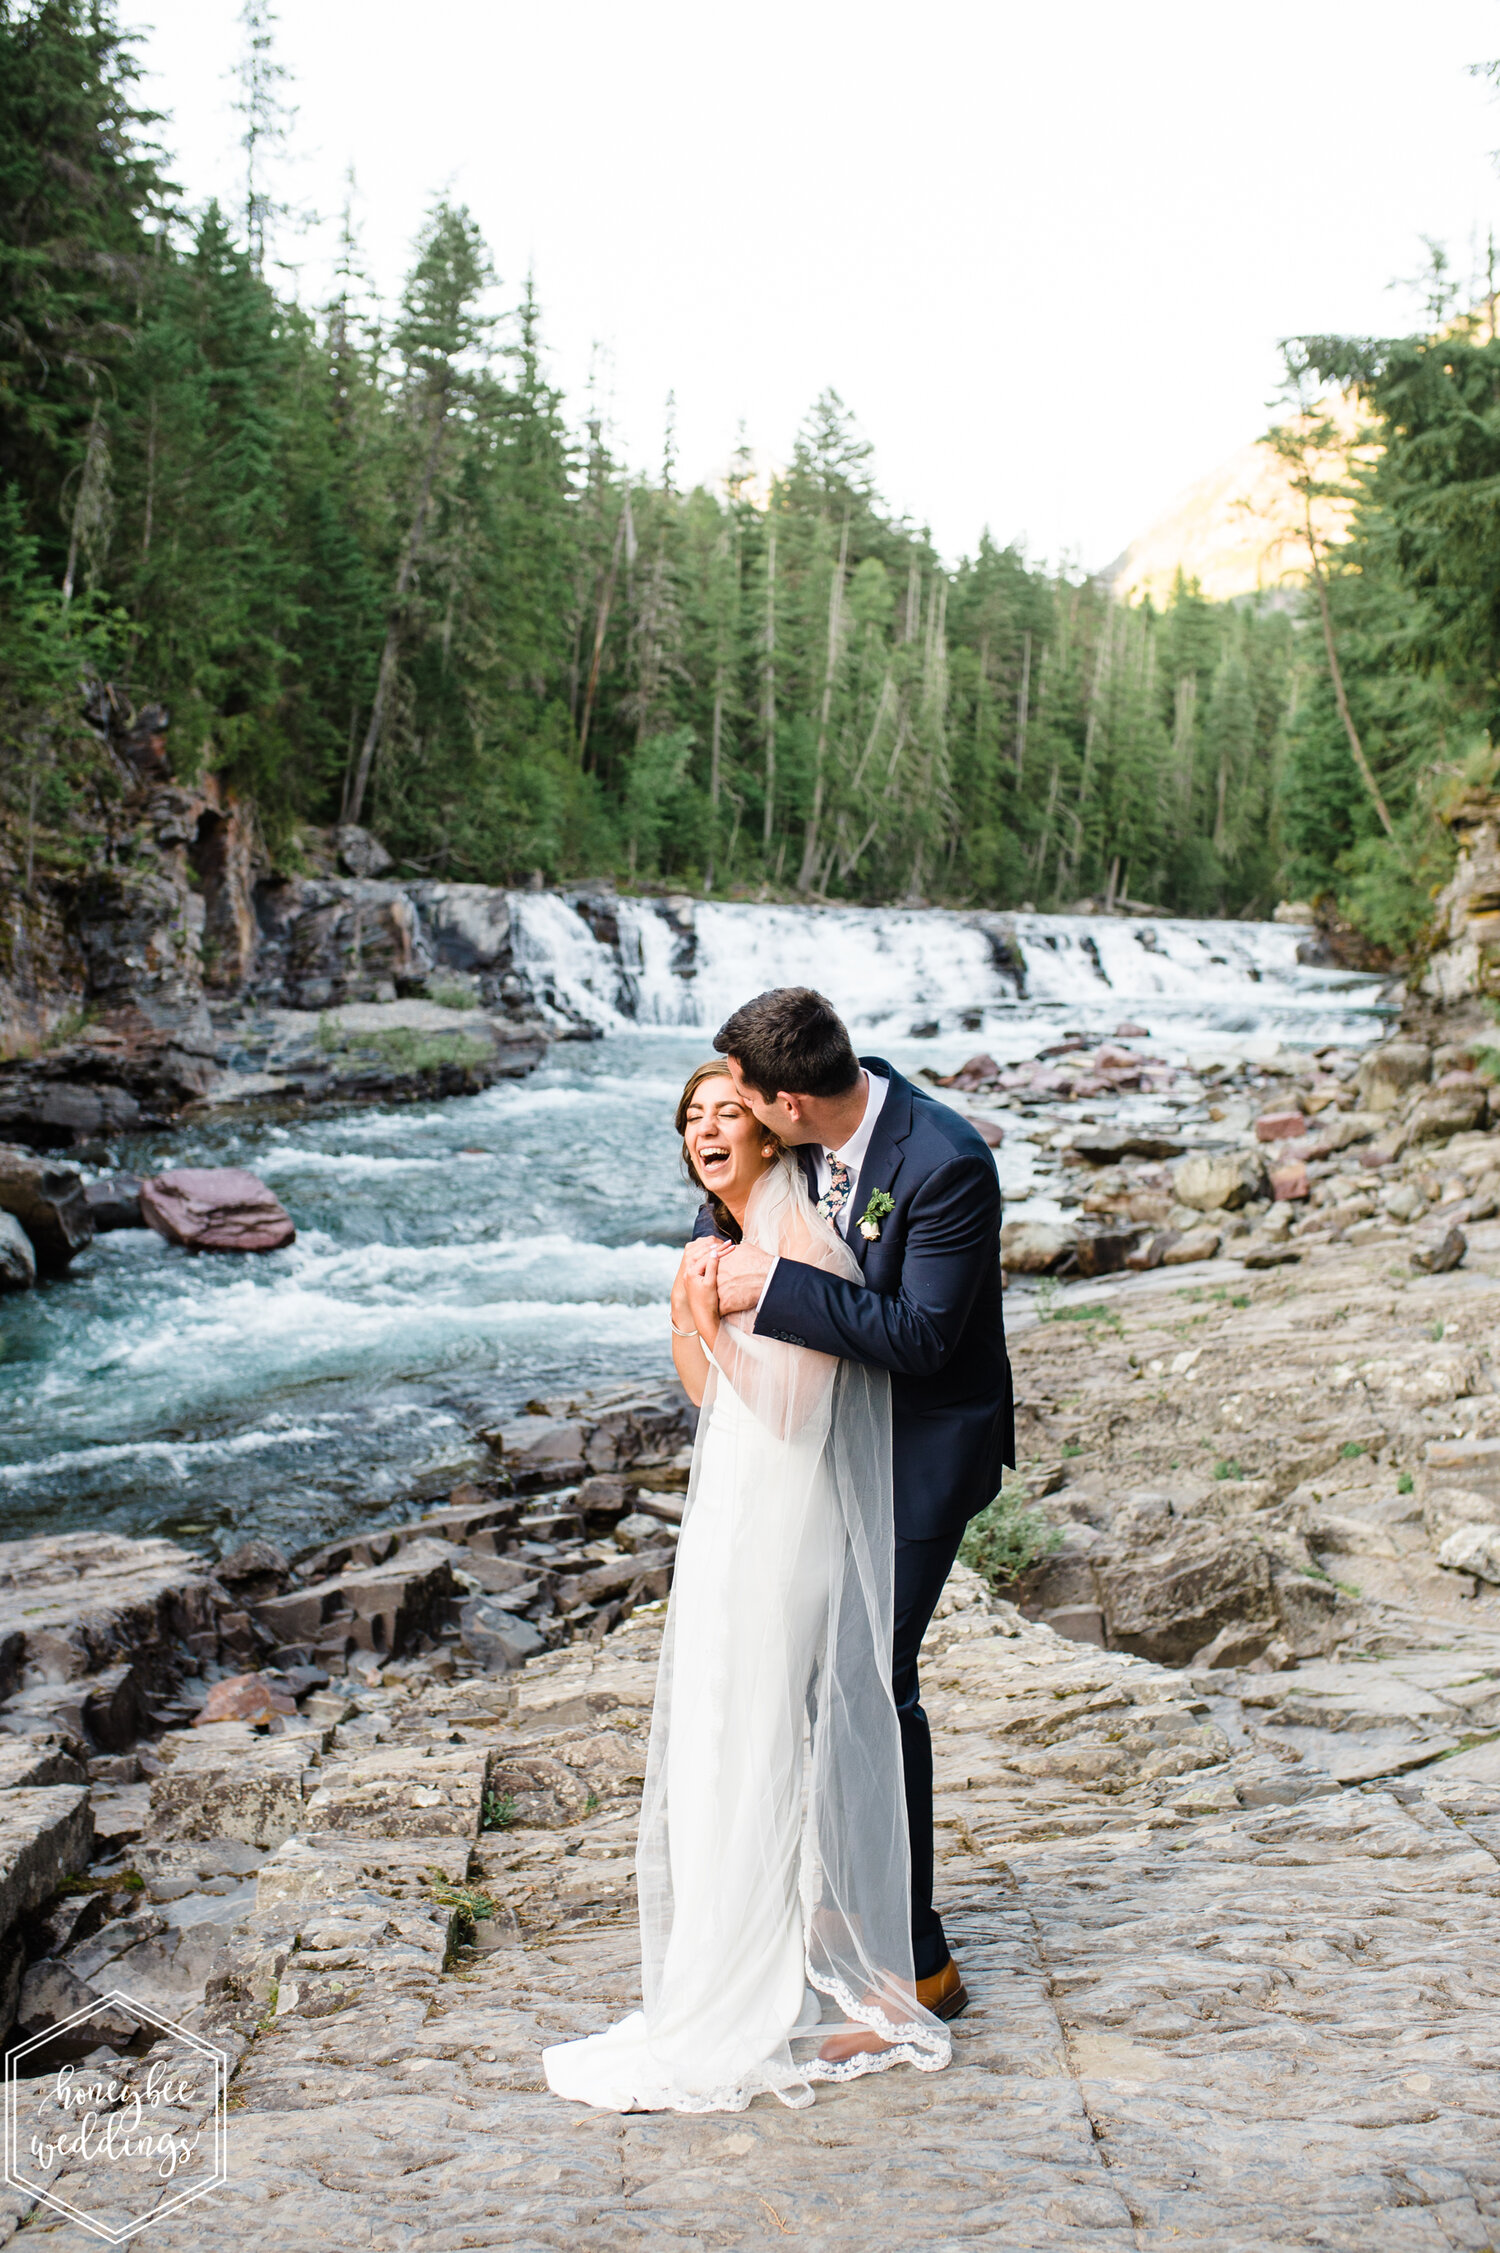 138Glacier National Park Wedding_Glacier Outdoor Center_Honeybee Weddings_Anna & Seth_July 21, 2019-2347.jpg